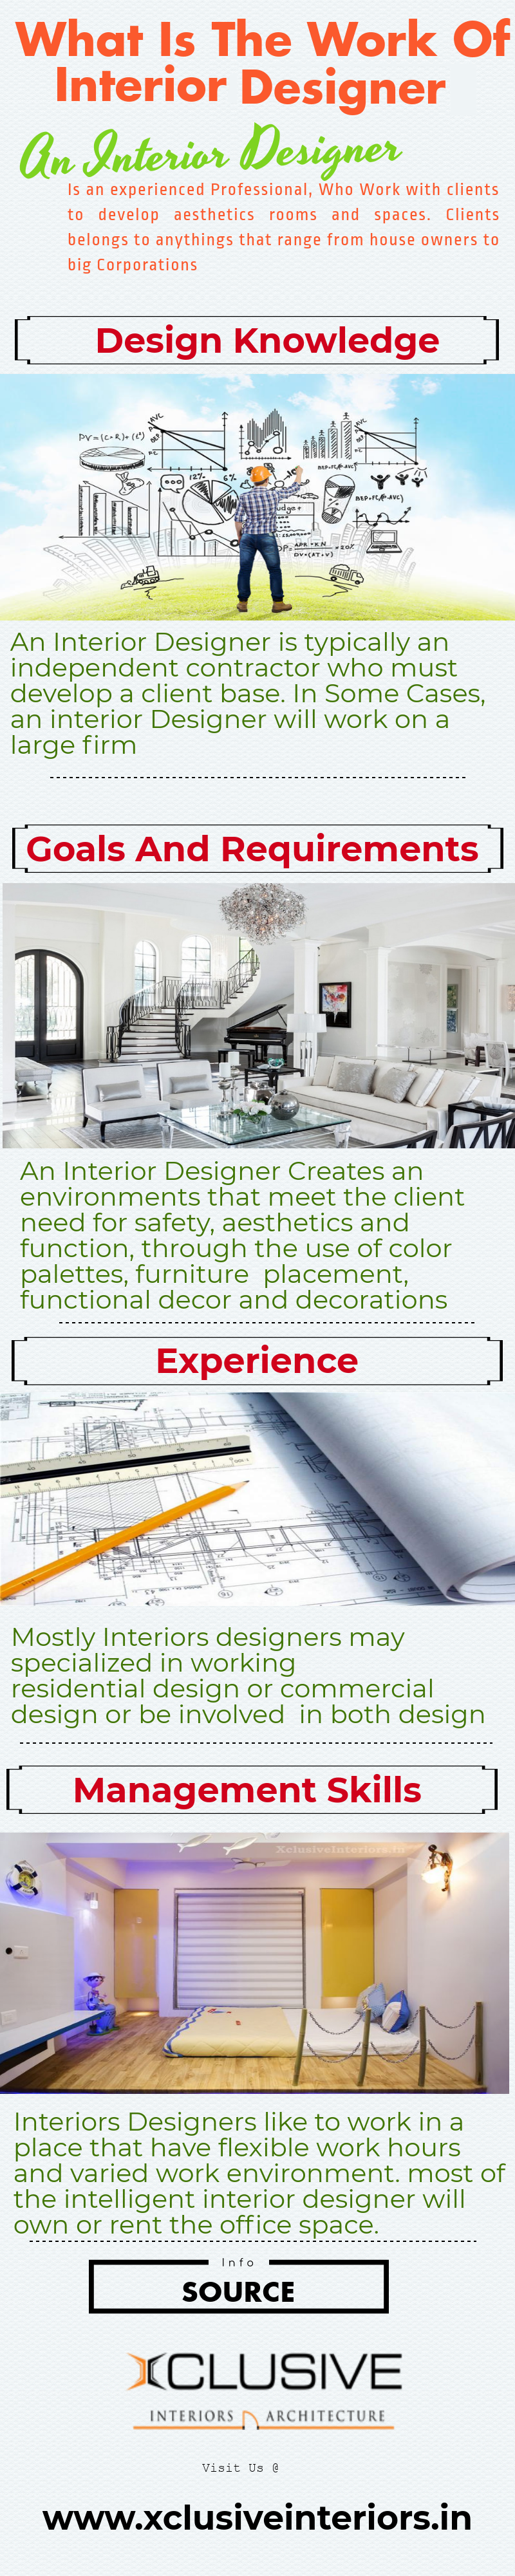 Looking for best interior designer in pune xclusive interiors is leading residential architect also rh pinterest